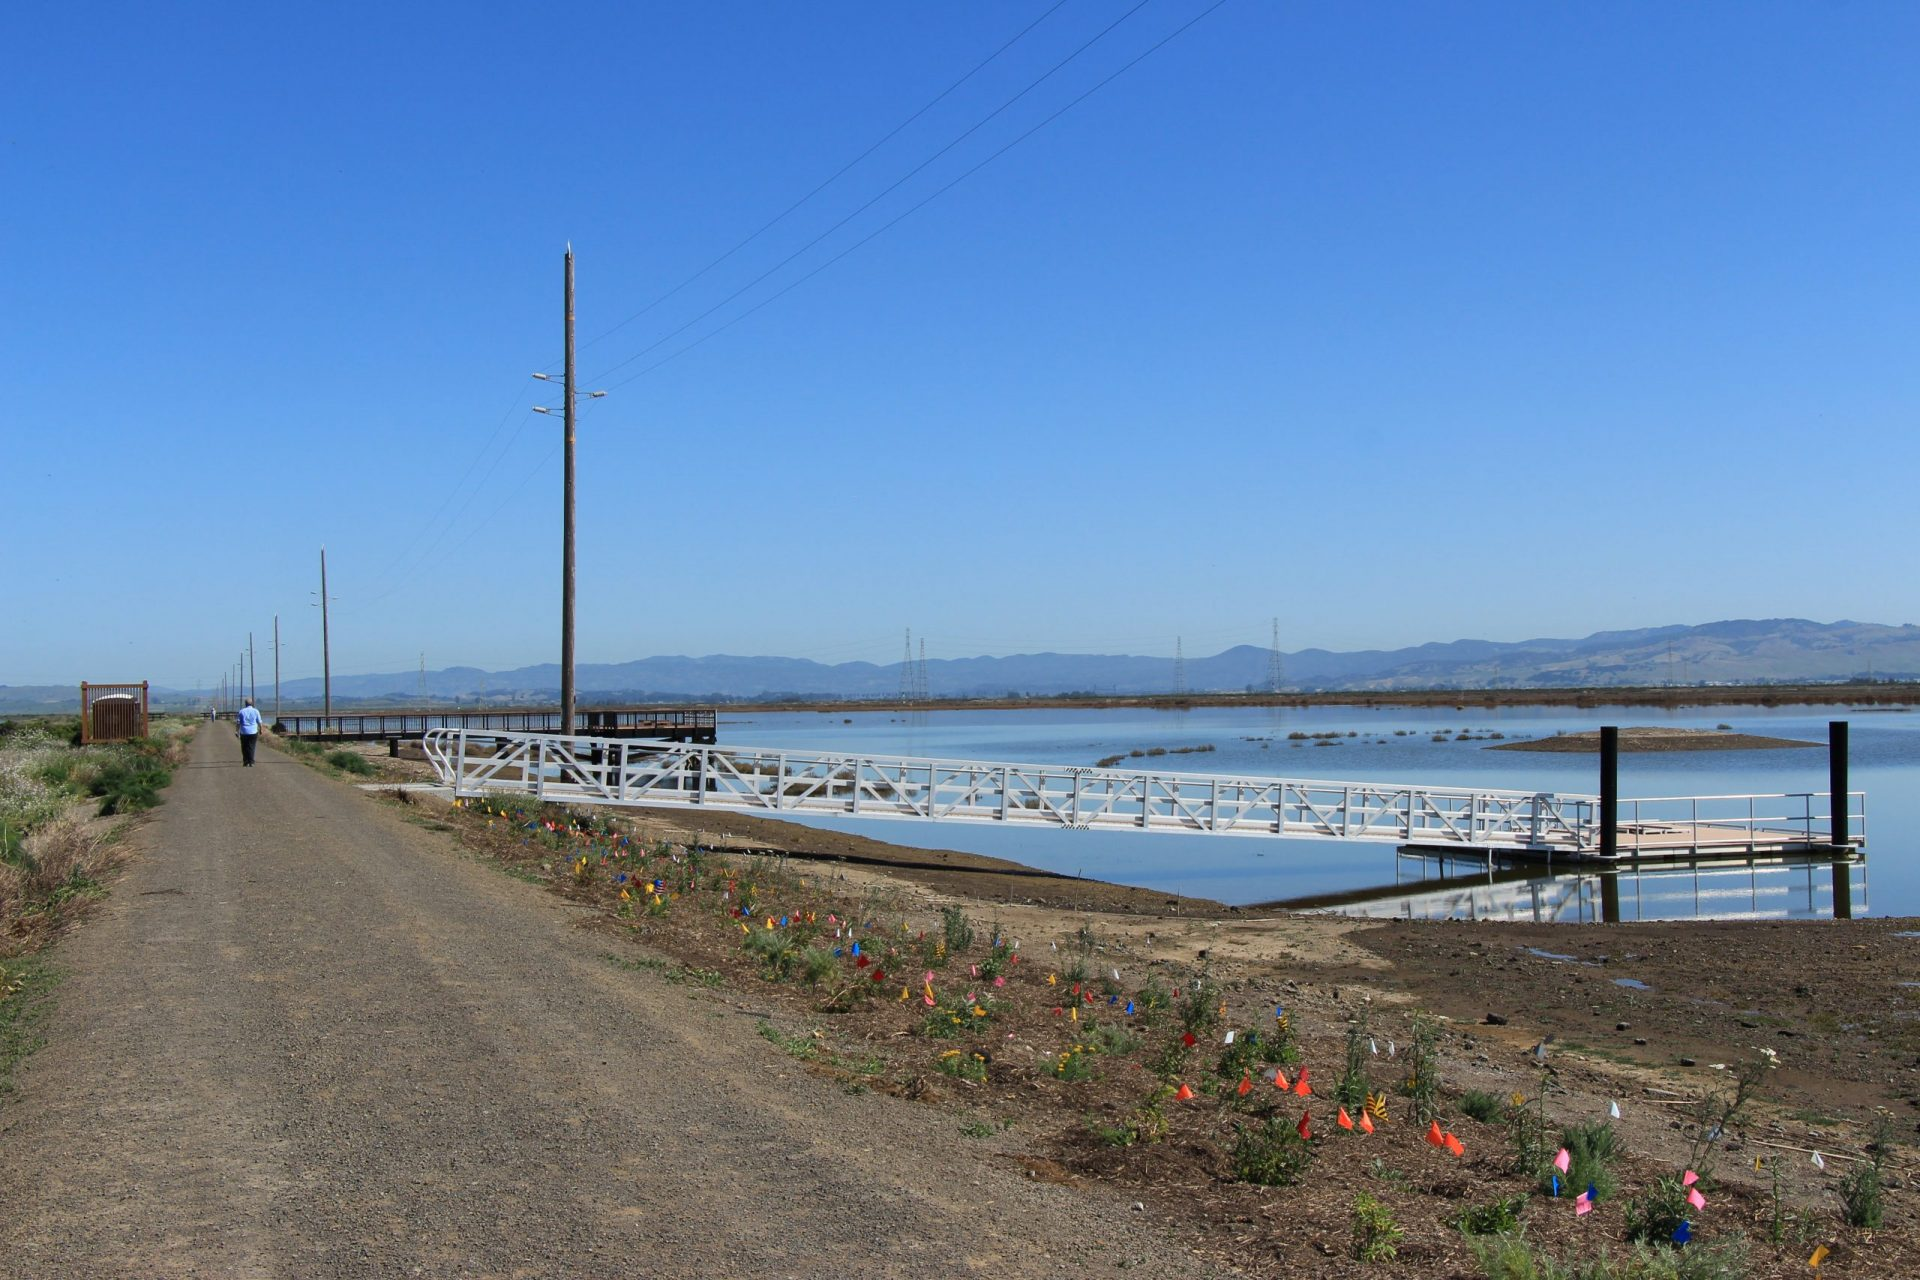 dirt road with ramp to pier